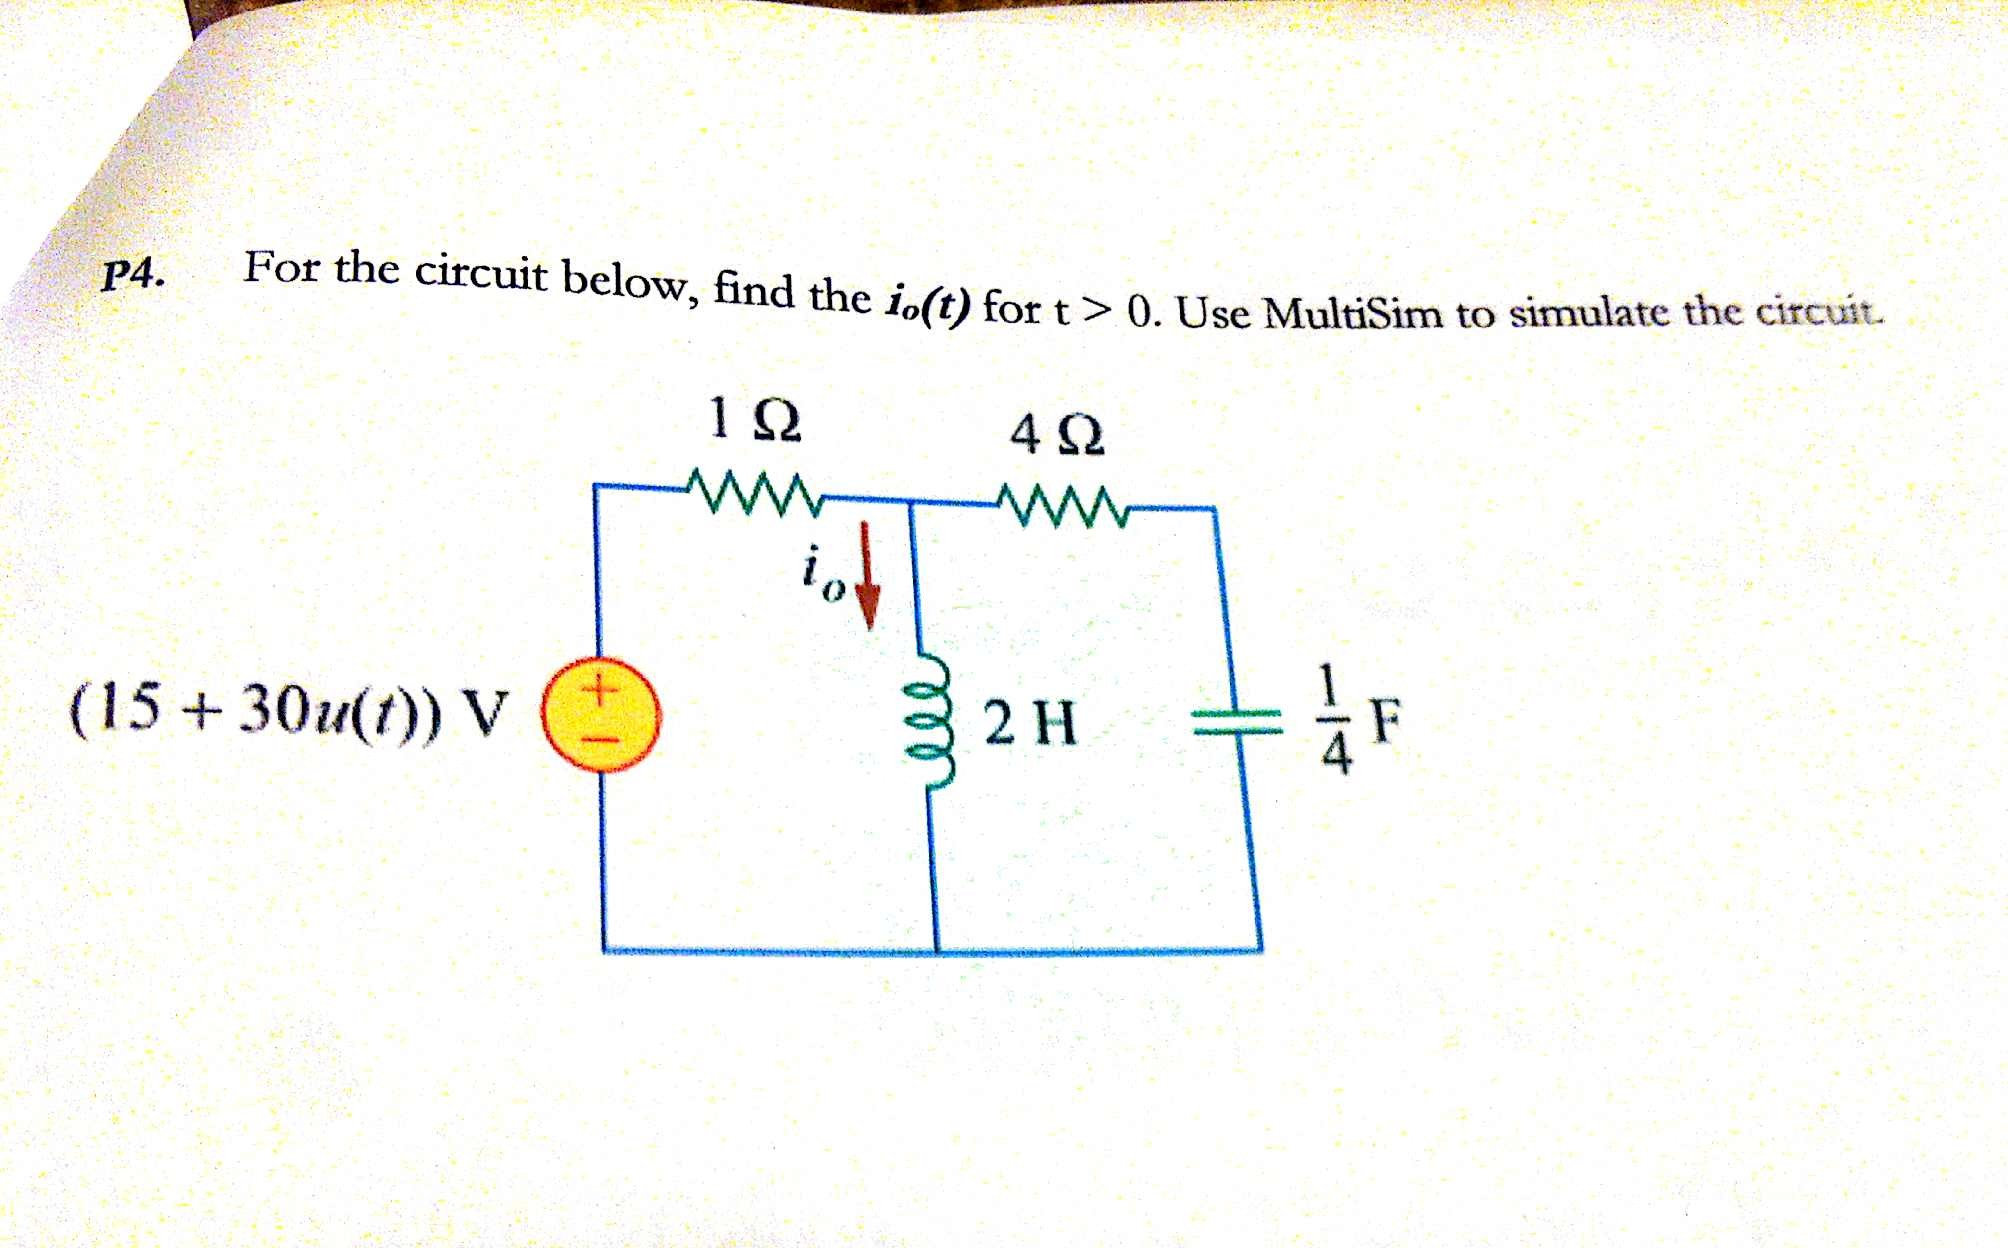 For the circuit below, find the io(t) for t > 0. U